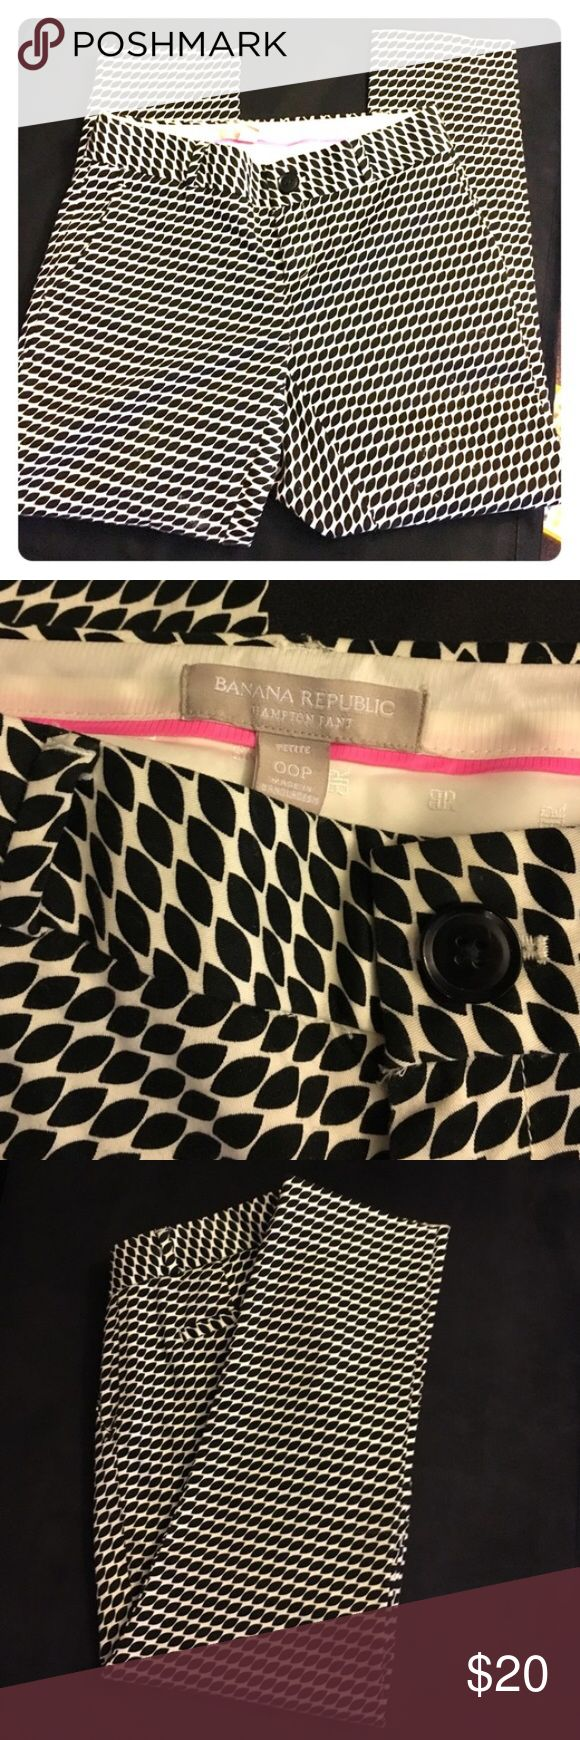 Banana Republic Cropped Hampton pant BR cropped Hampton pant in black and white pattern. So cute and all season! Sized 00P but cut large- wld fit 2reg. Excellent condition- just too big for me Banana Republic Pants Ankle & Cropped